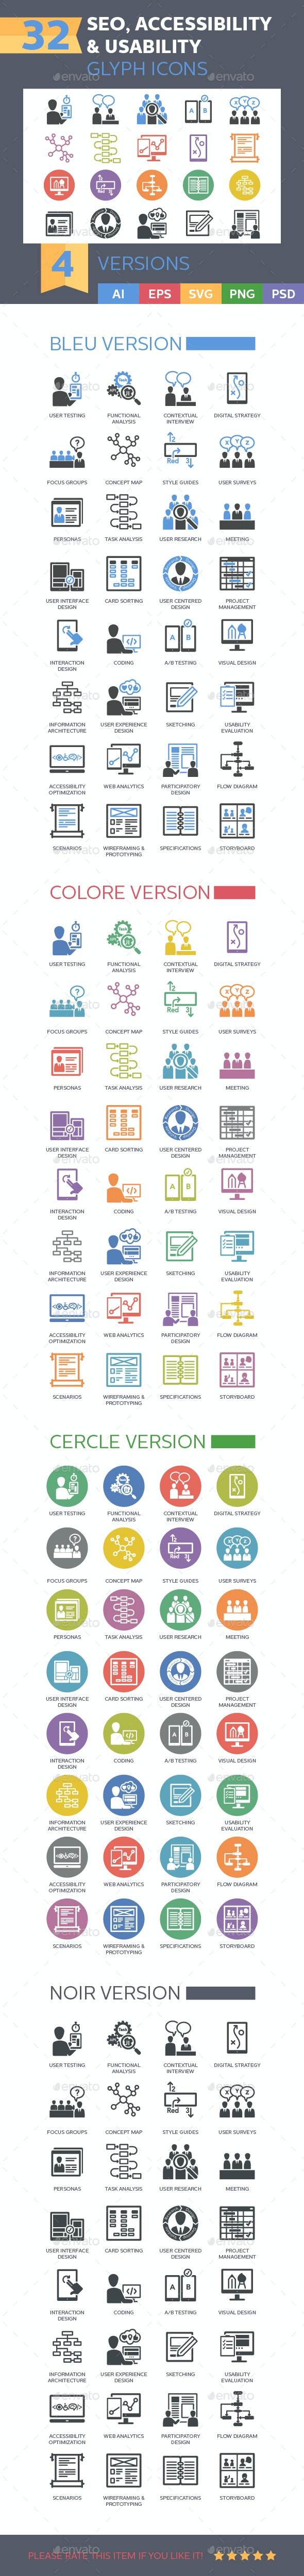 Web Usability & Accessibility Icons - Glyph Series - Web Icons